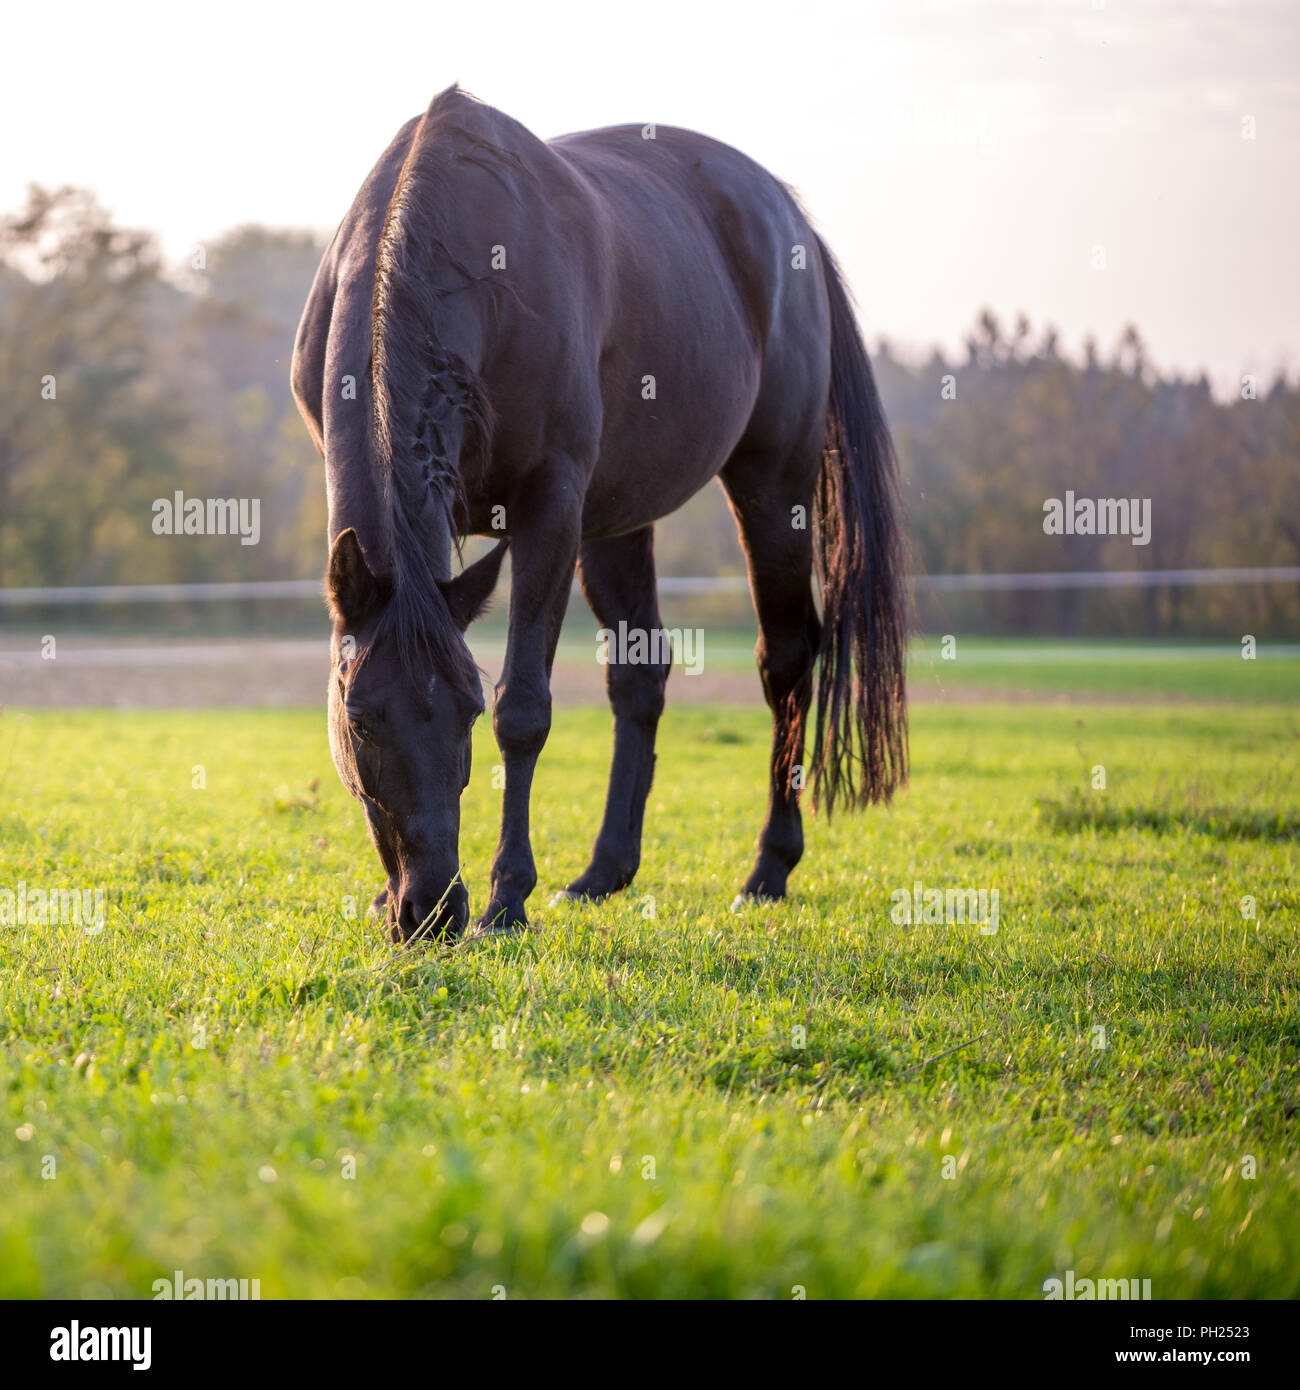 Horse grazing in a lush green meadow in square format. - Stock Image